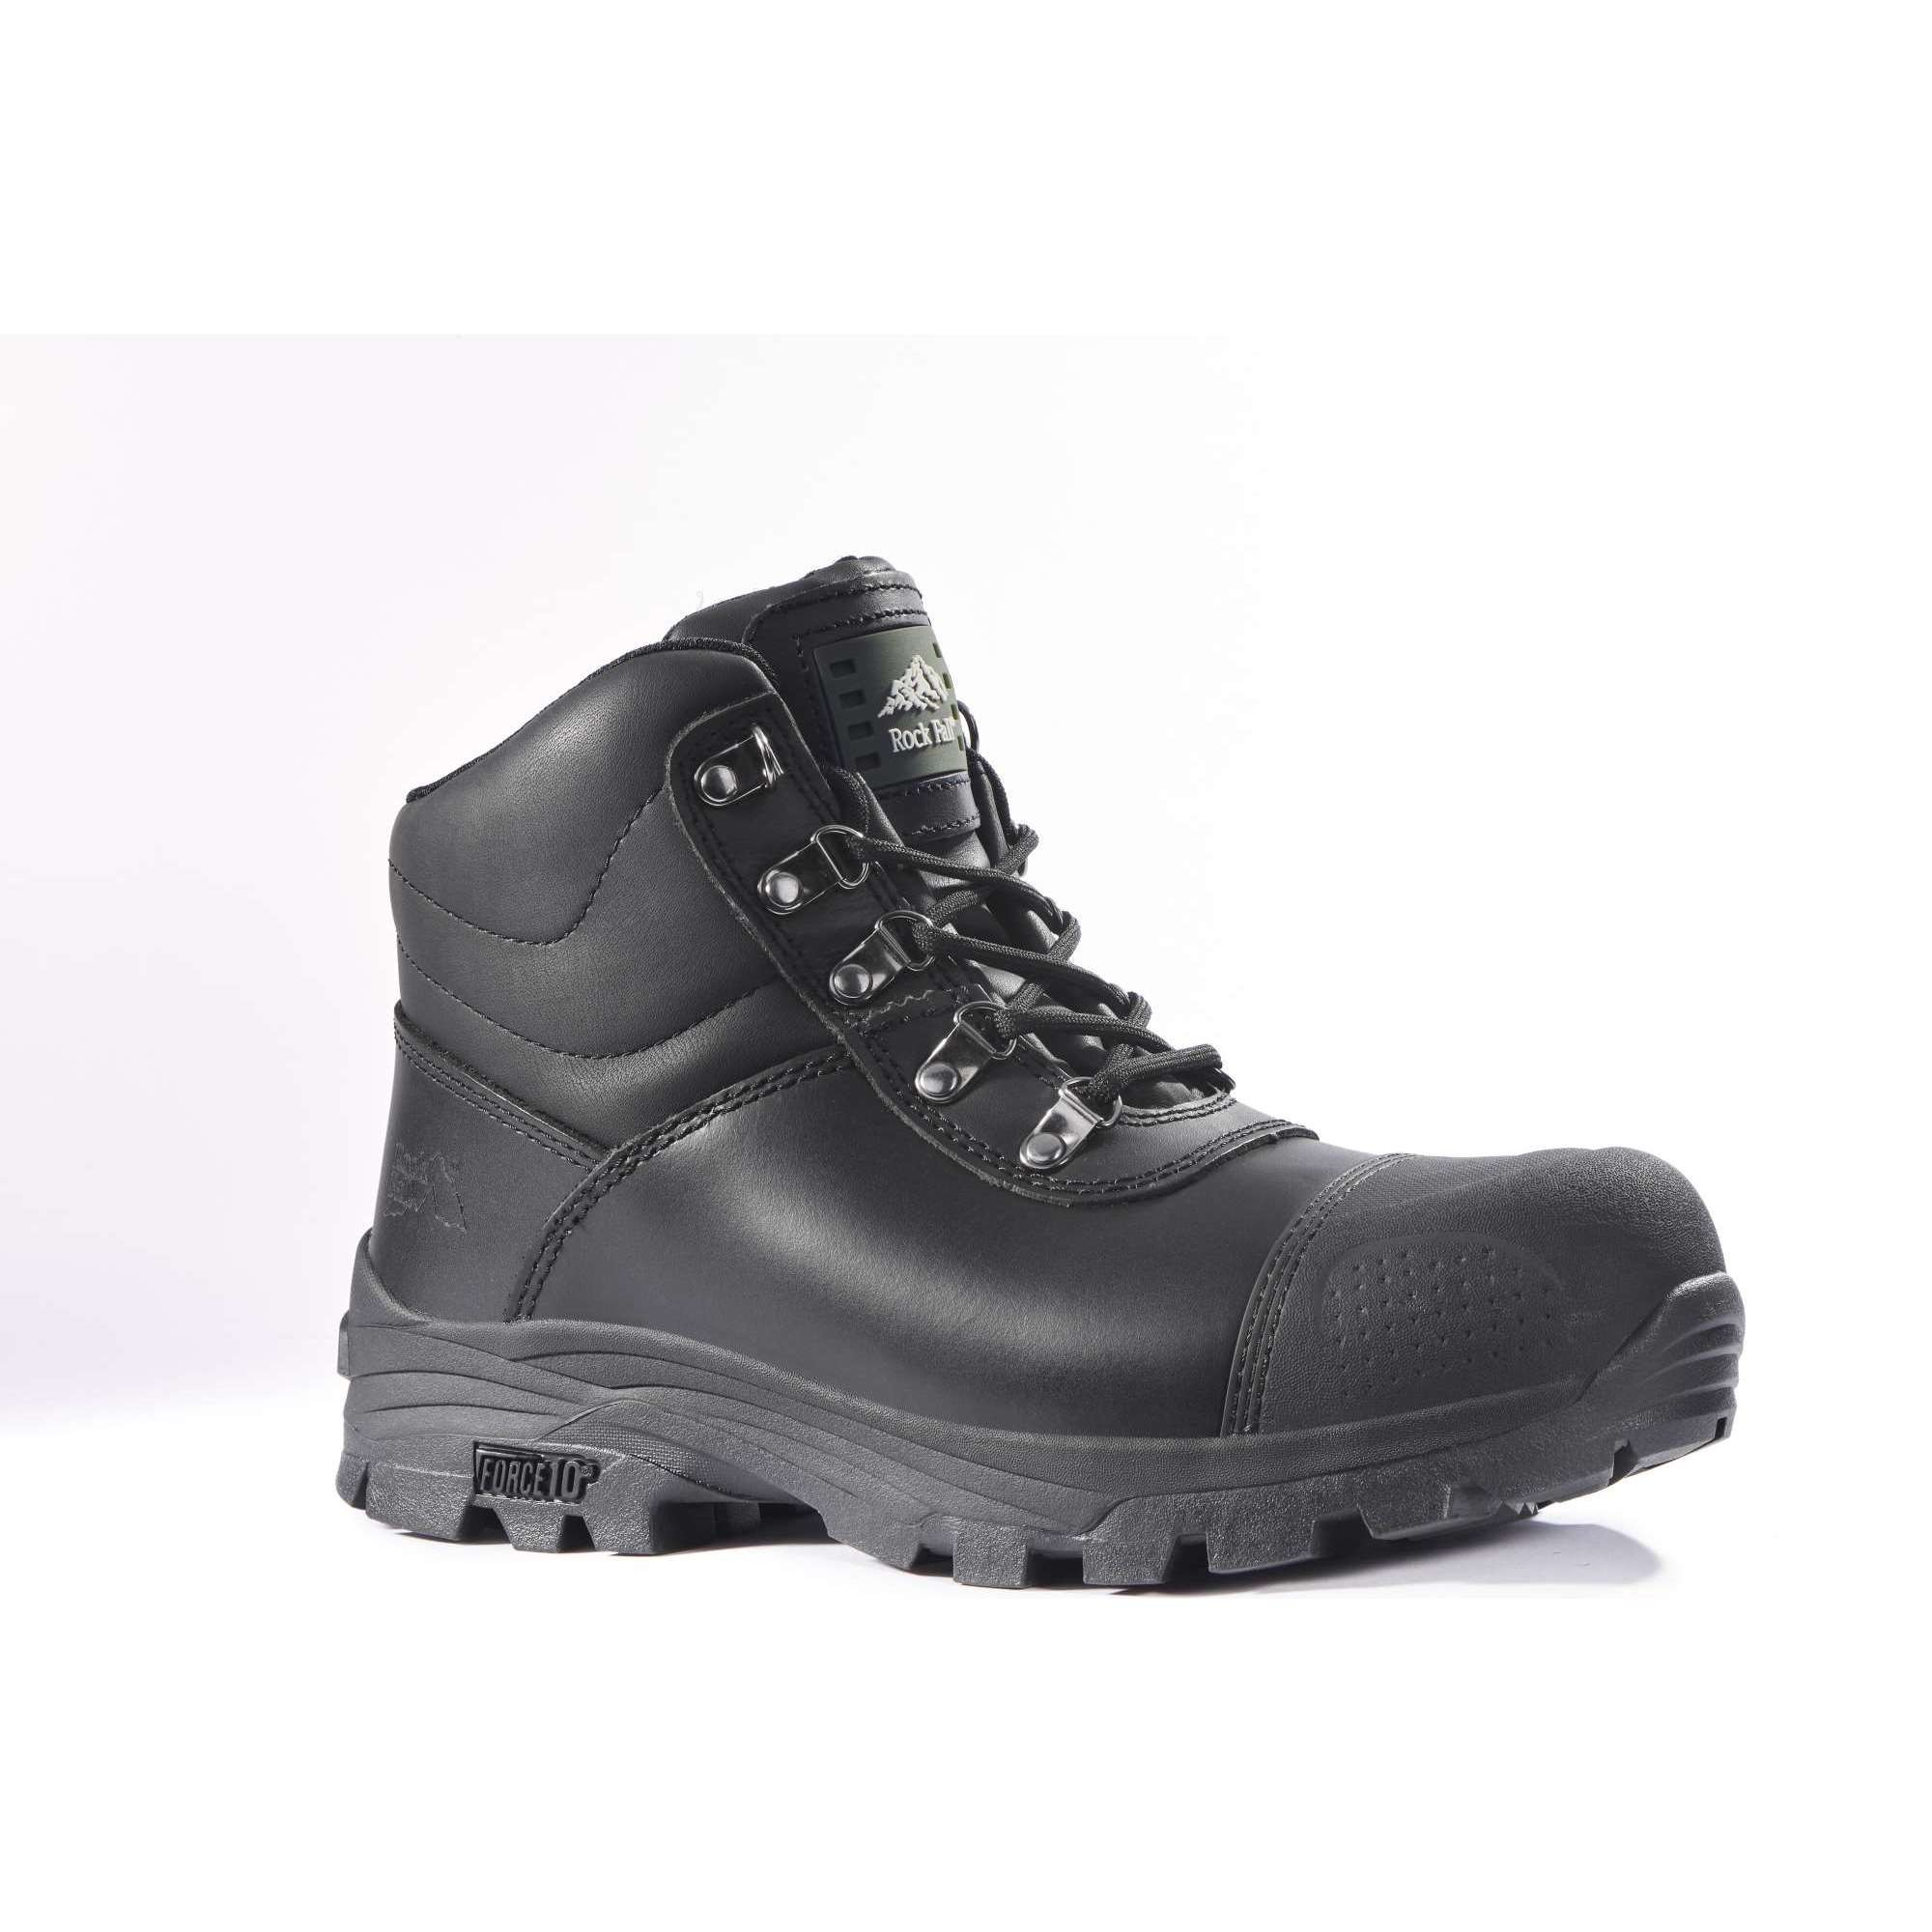 Rock Fall Granite S3 Safety Boots